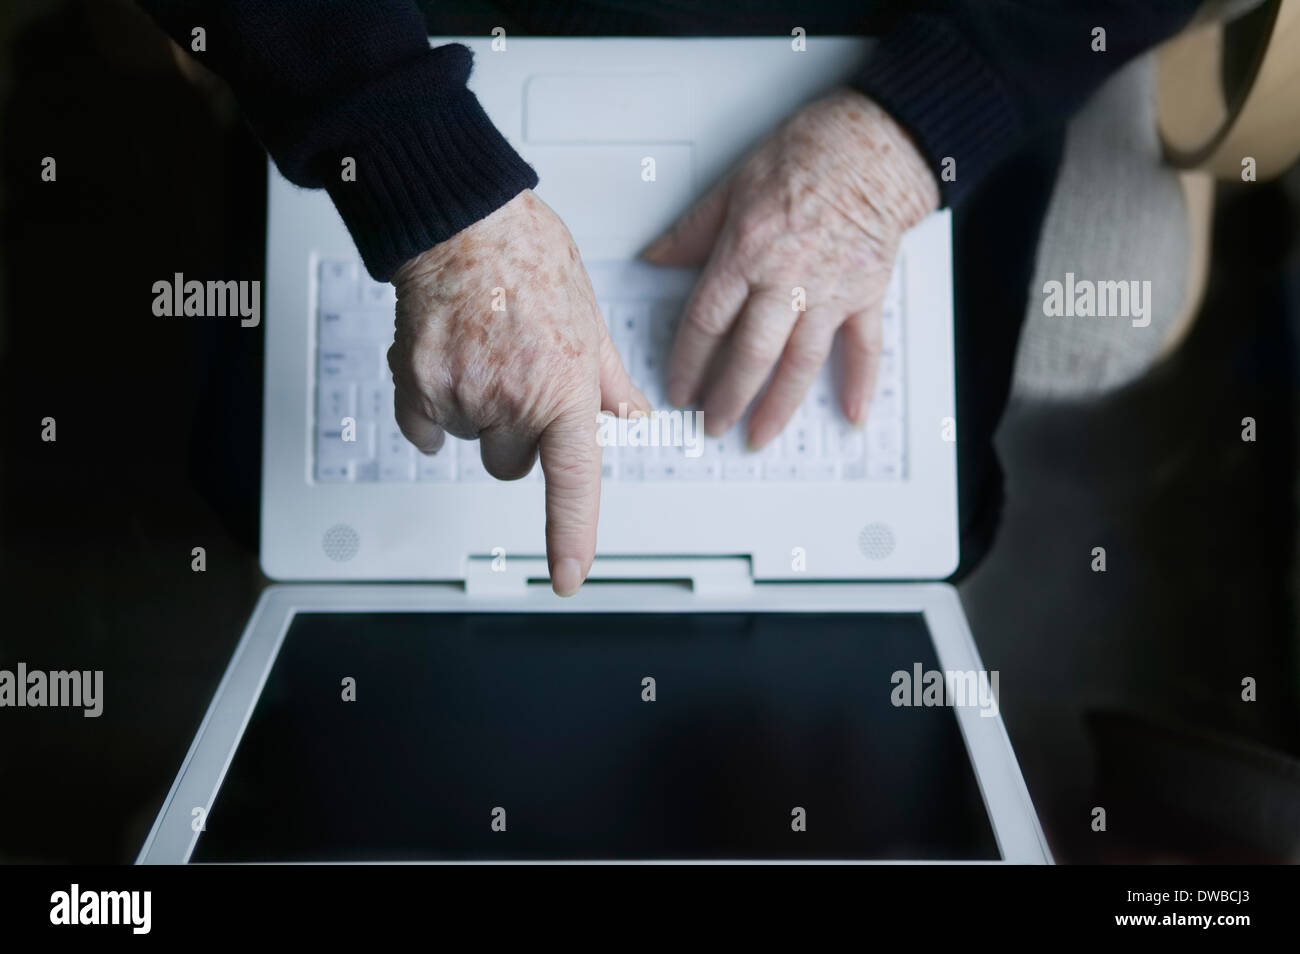 Senior woman pointing at laptop screen - Stock Image